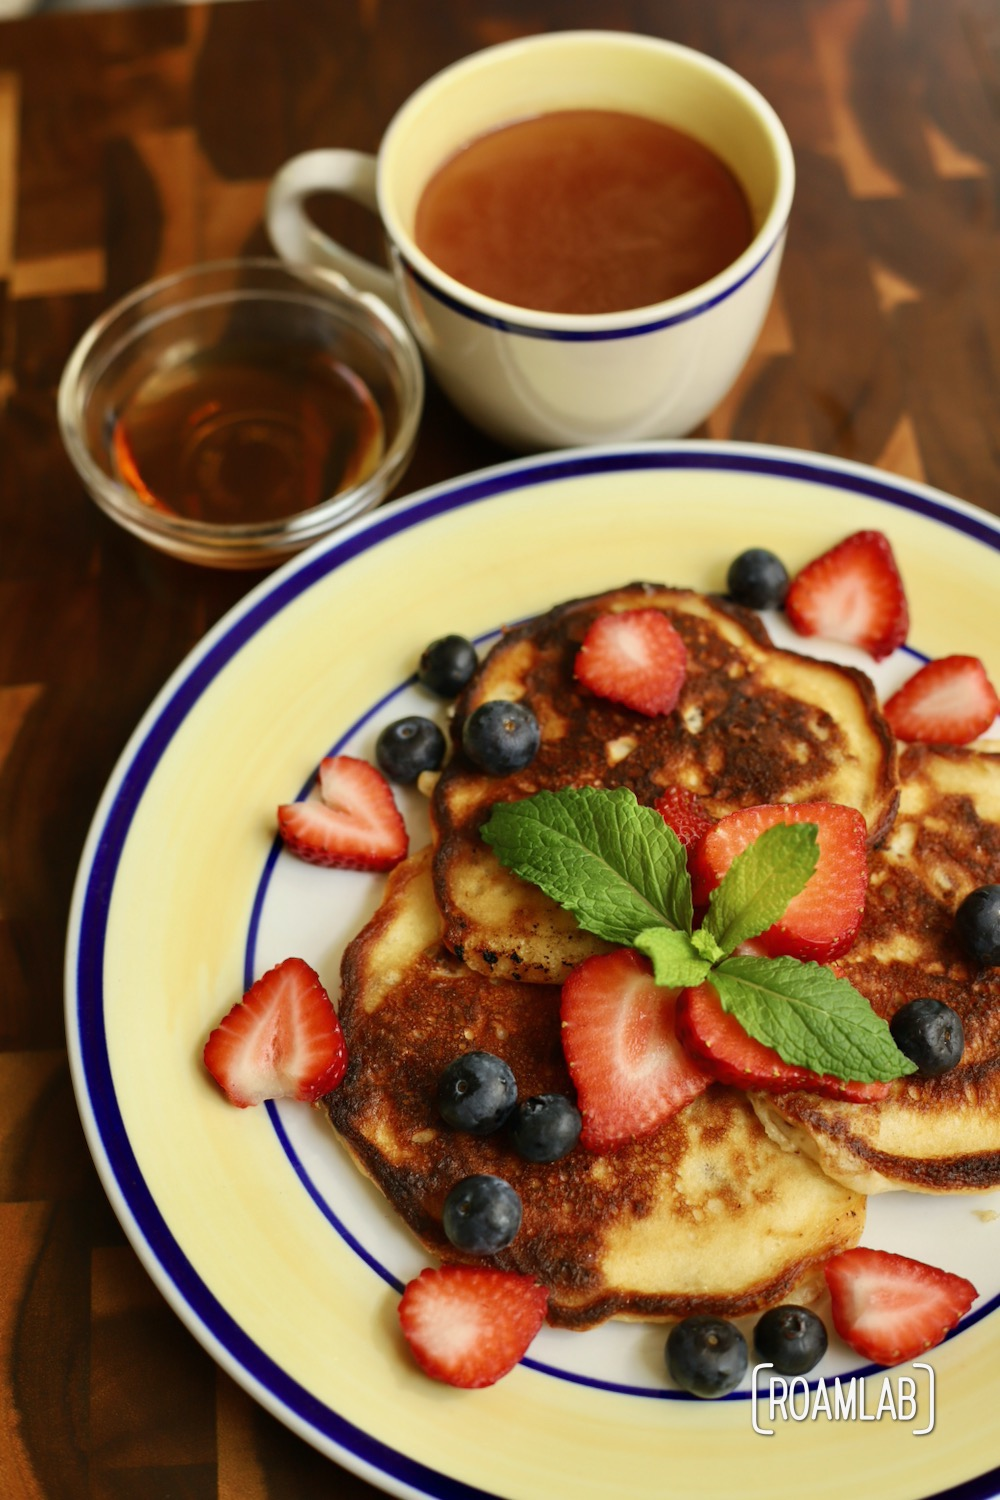 Chop up some strawberries, blueberries, or whatever berries make your mouth water for this Pecan Yogurt Pancakes campfire cooking breakfast recipe.